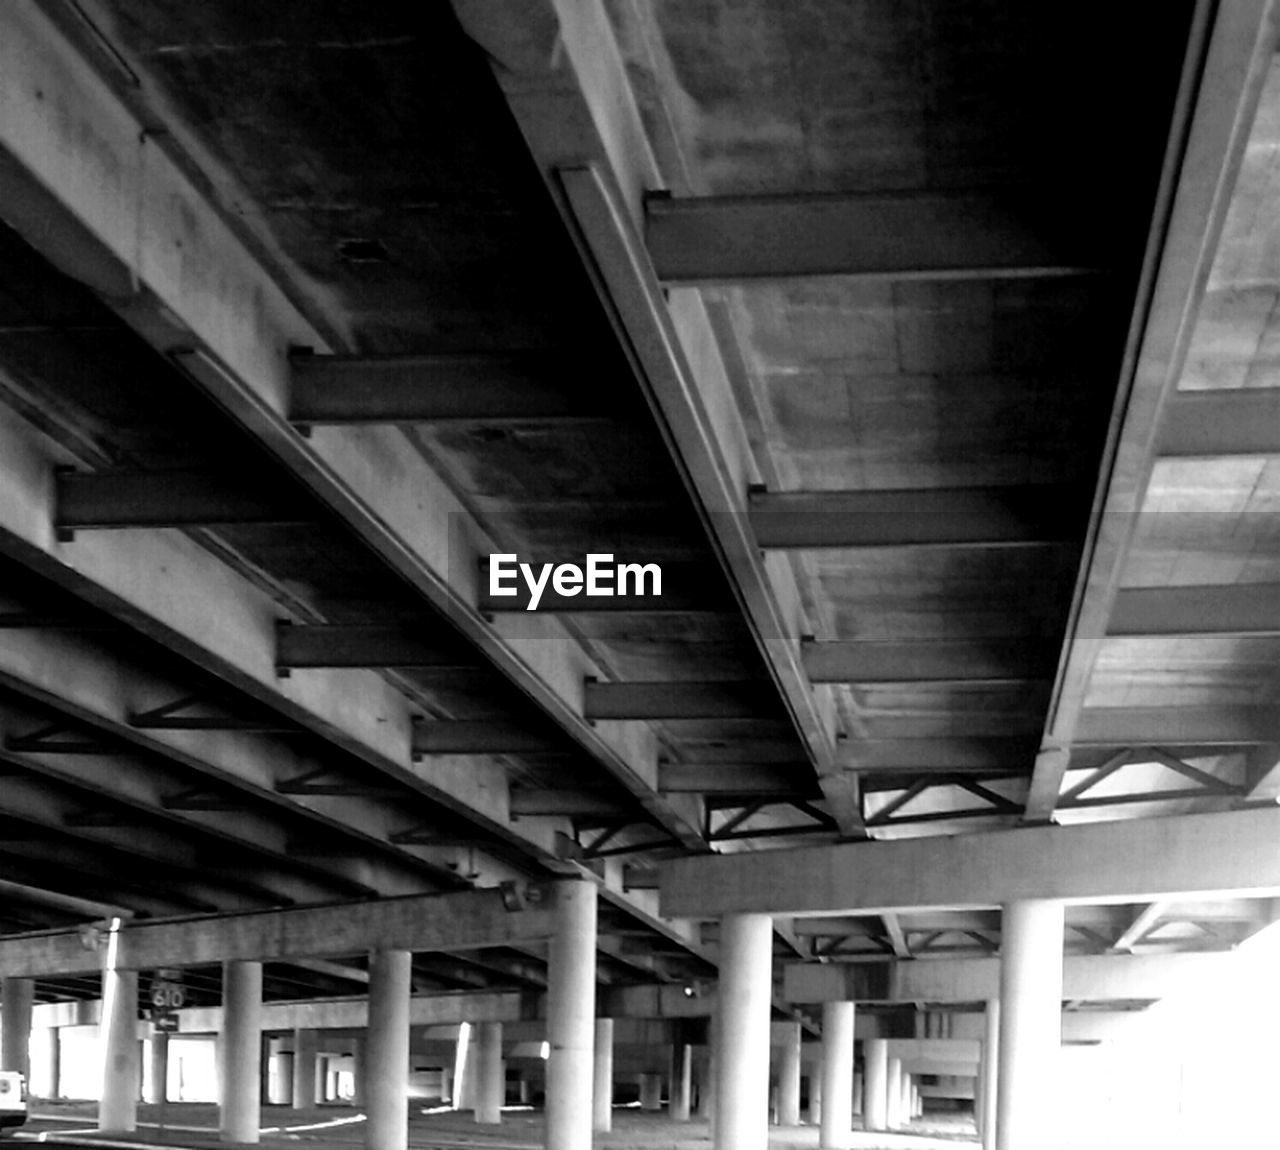 architecture, built structure, connection, bridge - man made structure, underneath, indoors, low angle view, ceiling, no people, architectural column, transportation, below, day, girder, parking garage